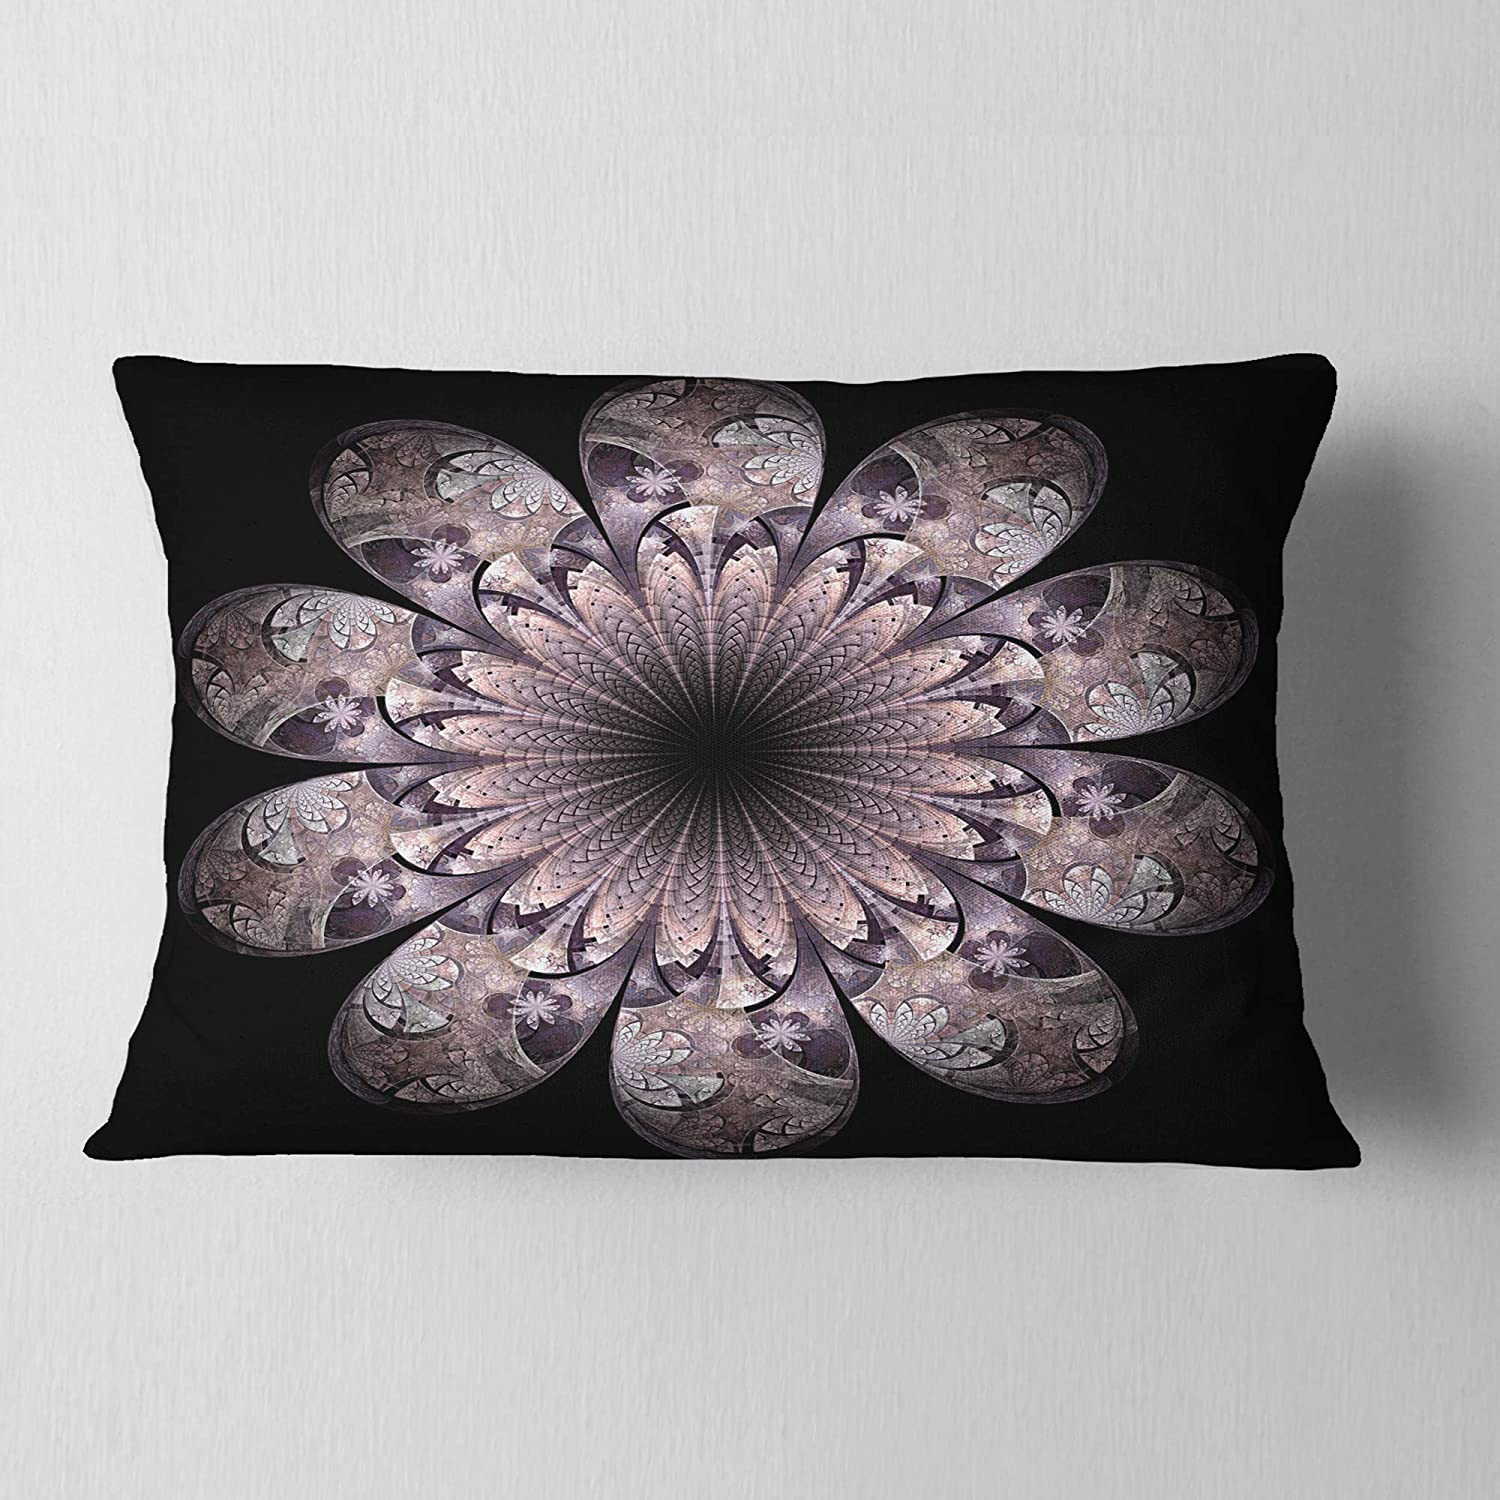 in x 20 in Designart CU11853-12-20 Dark Pink Digital Art Fractal Flower Floral Lumbar Cushion Cover for Living Room Insert Printed On Both Side Sofa Throw Pillow 12 in